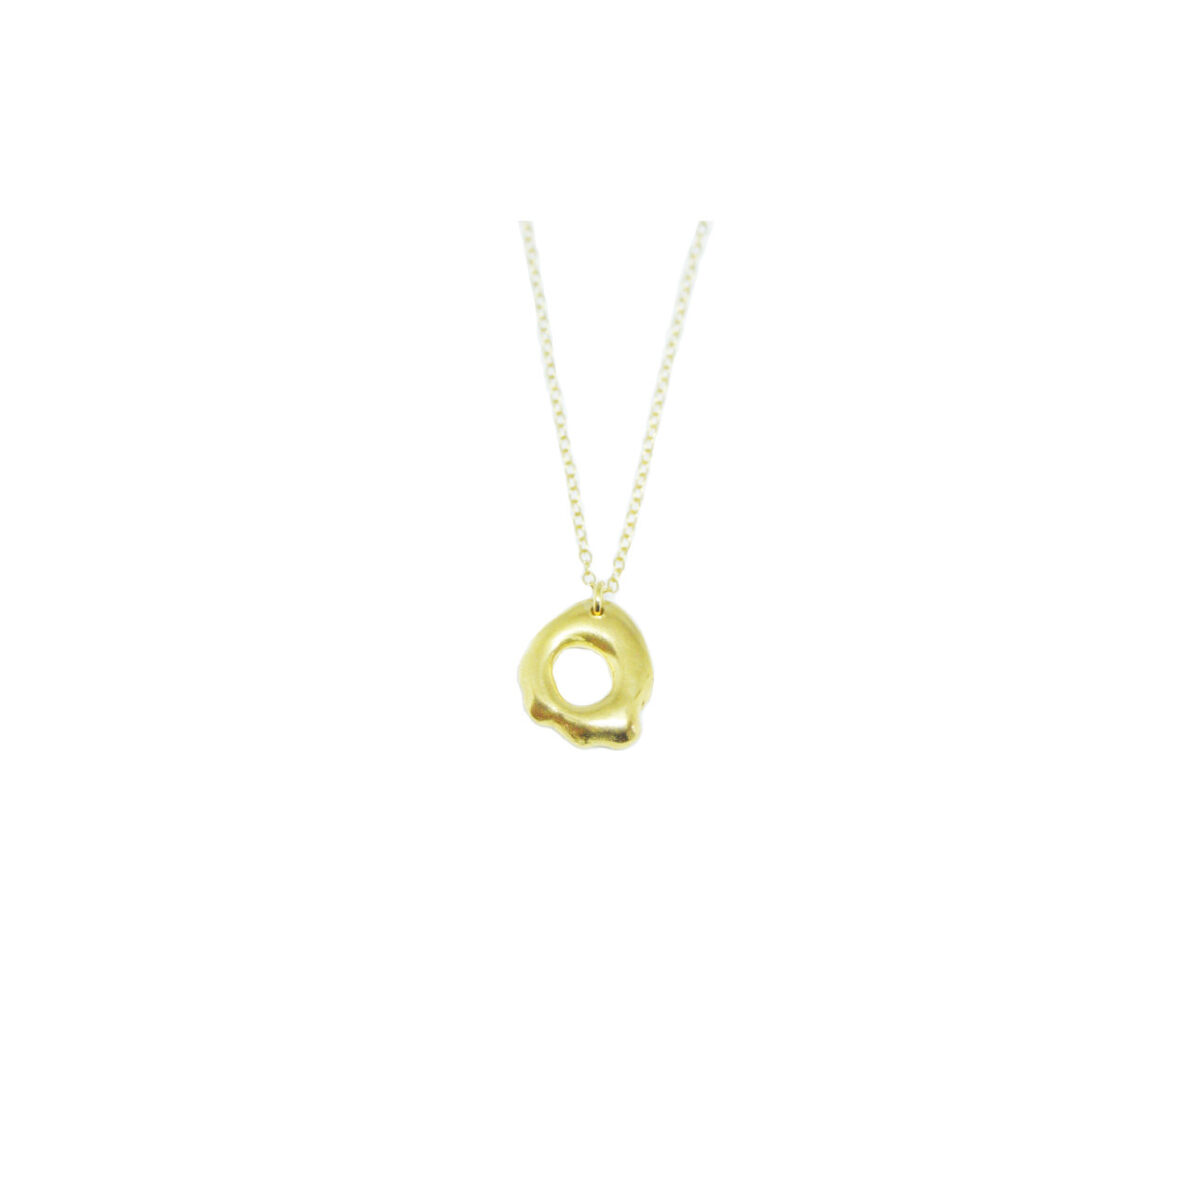 The Shape of Water II gold plated necklace